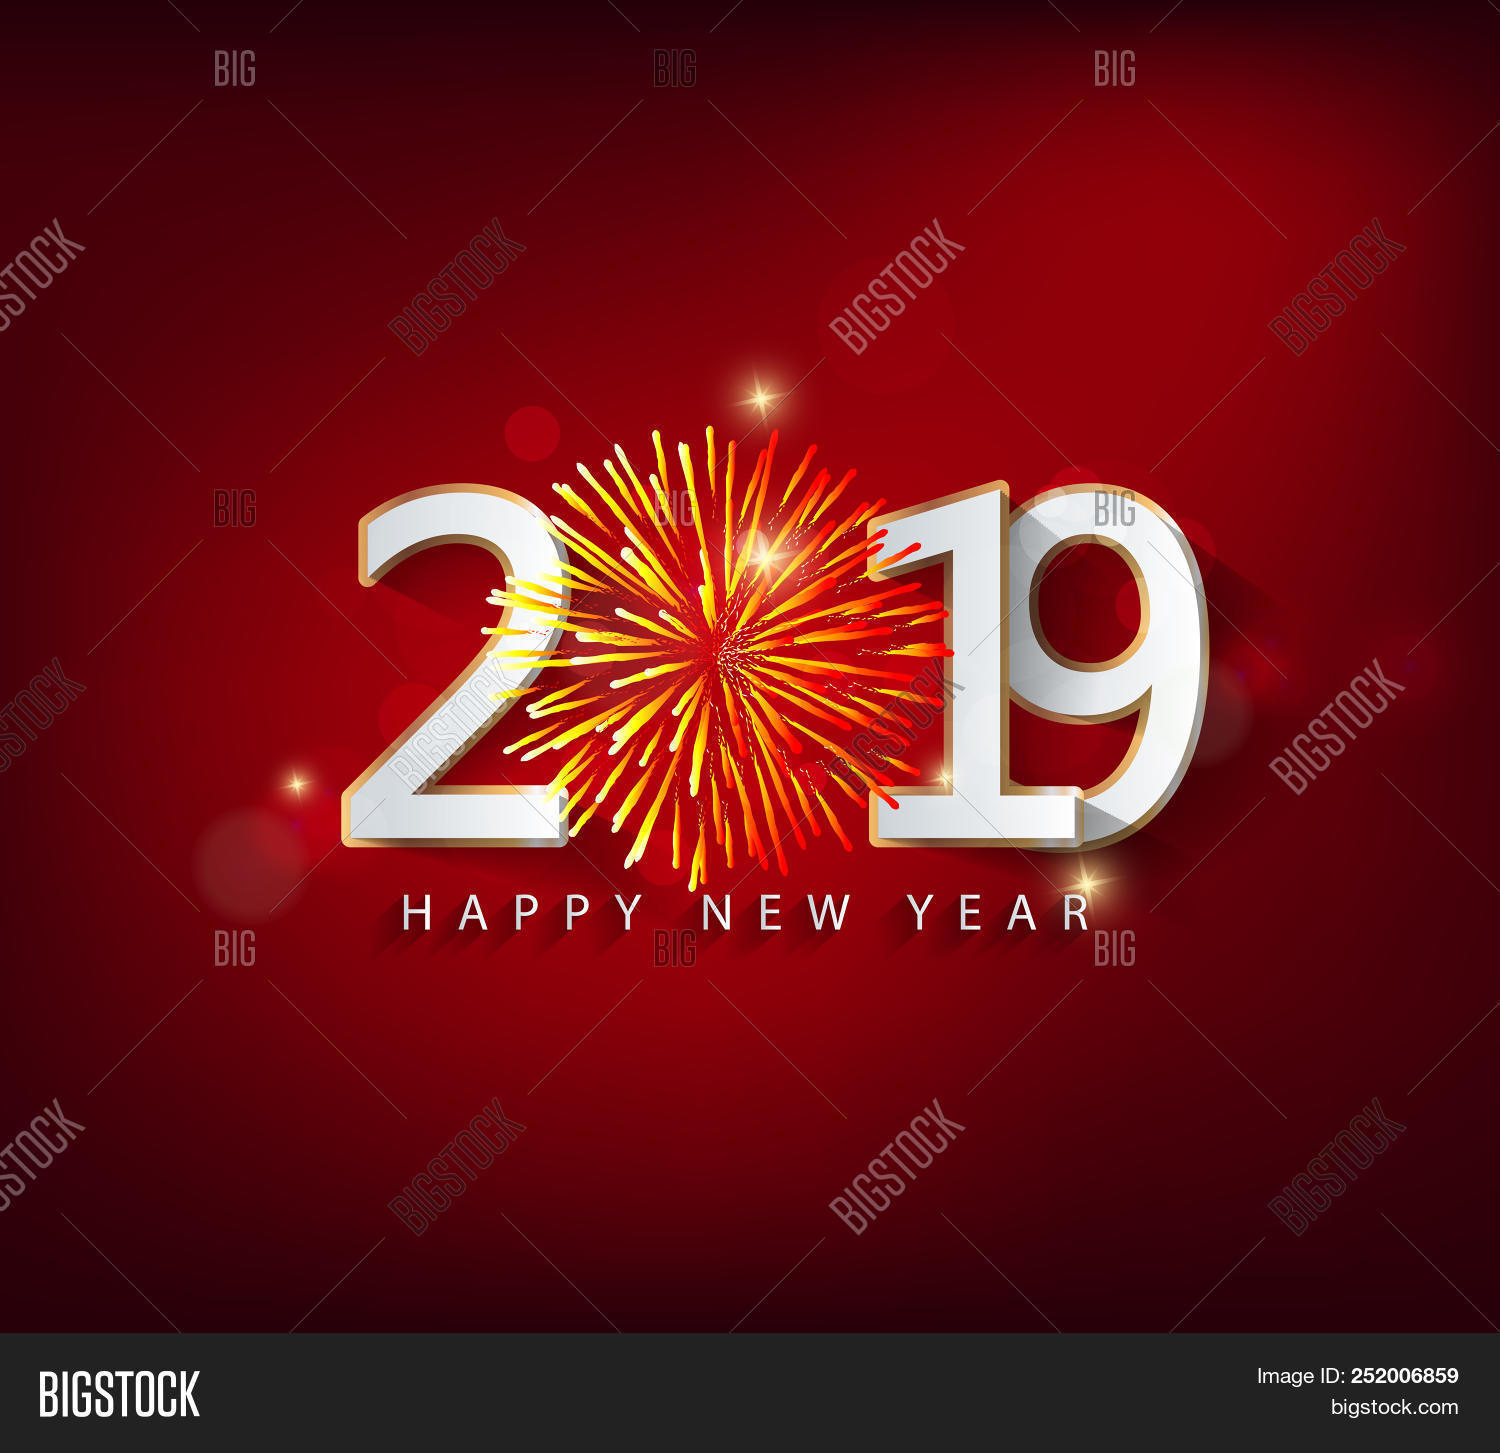 Happy New Year 2019 Image Photo Free Trial Bigstock